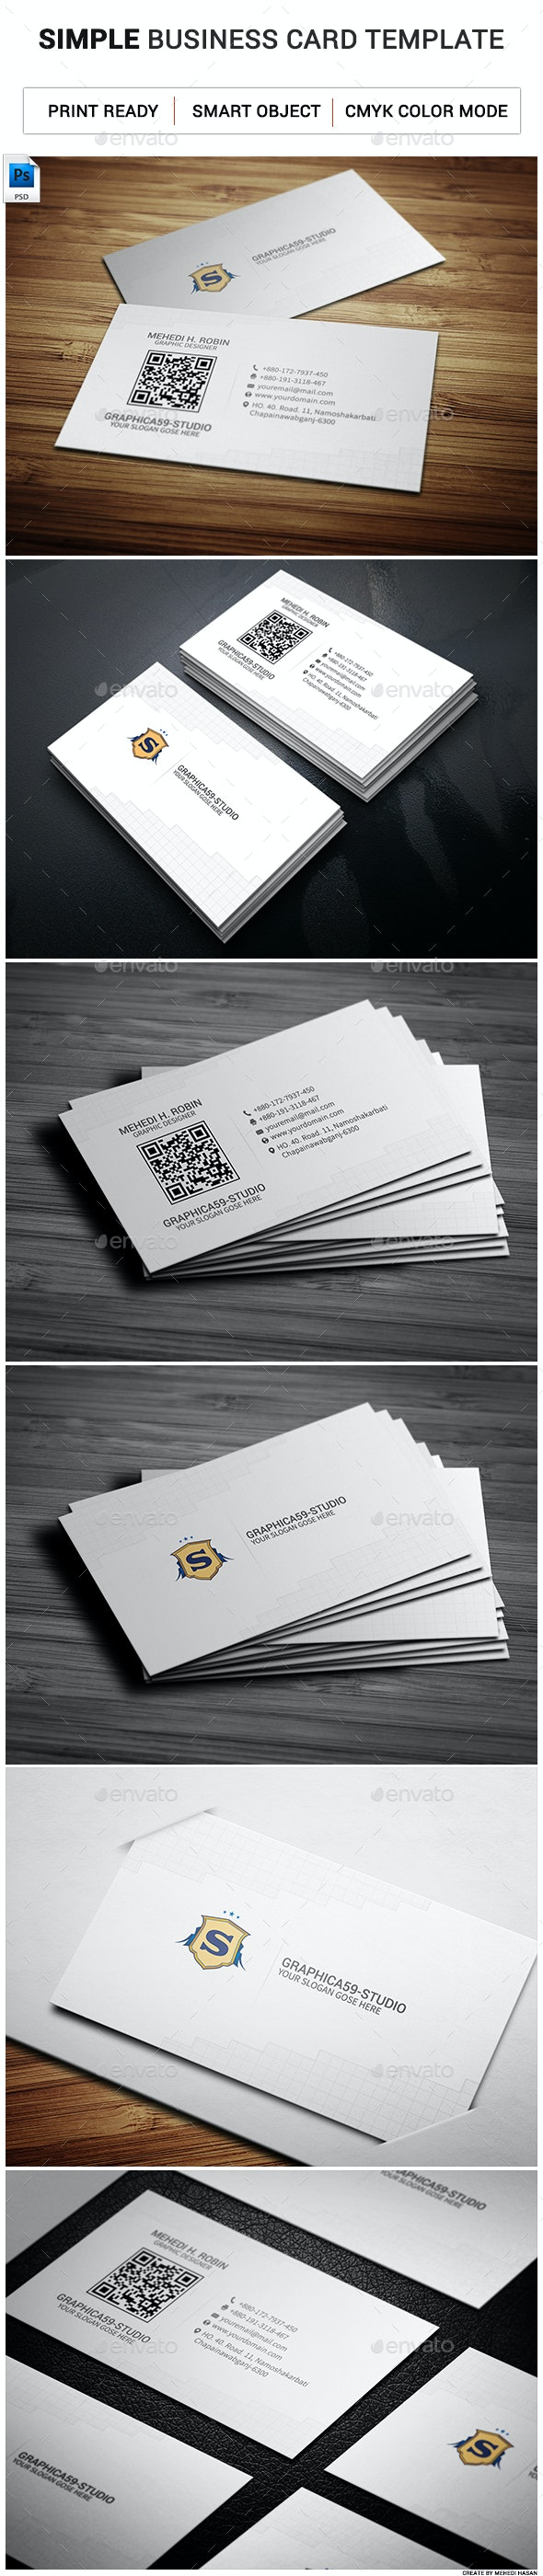 Simple Business Card 03 - Corporate Business Cards